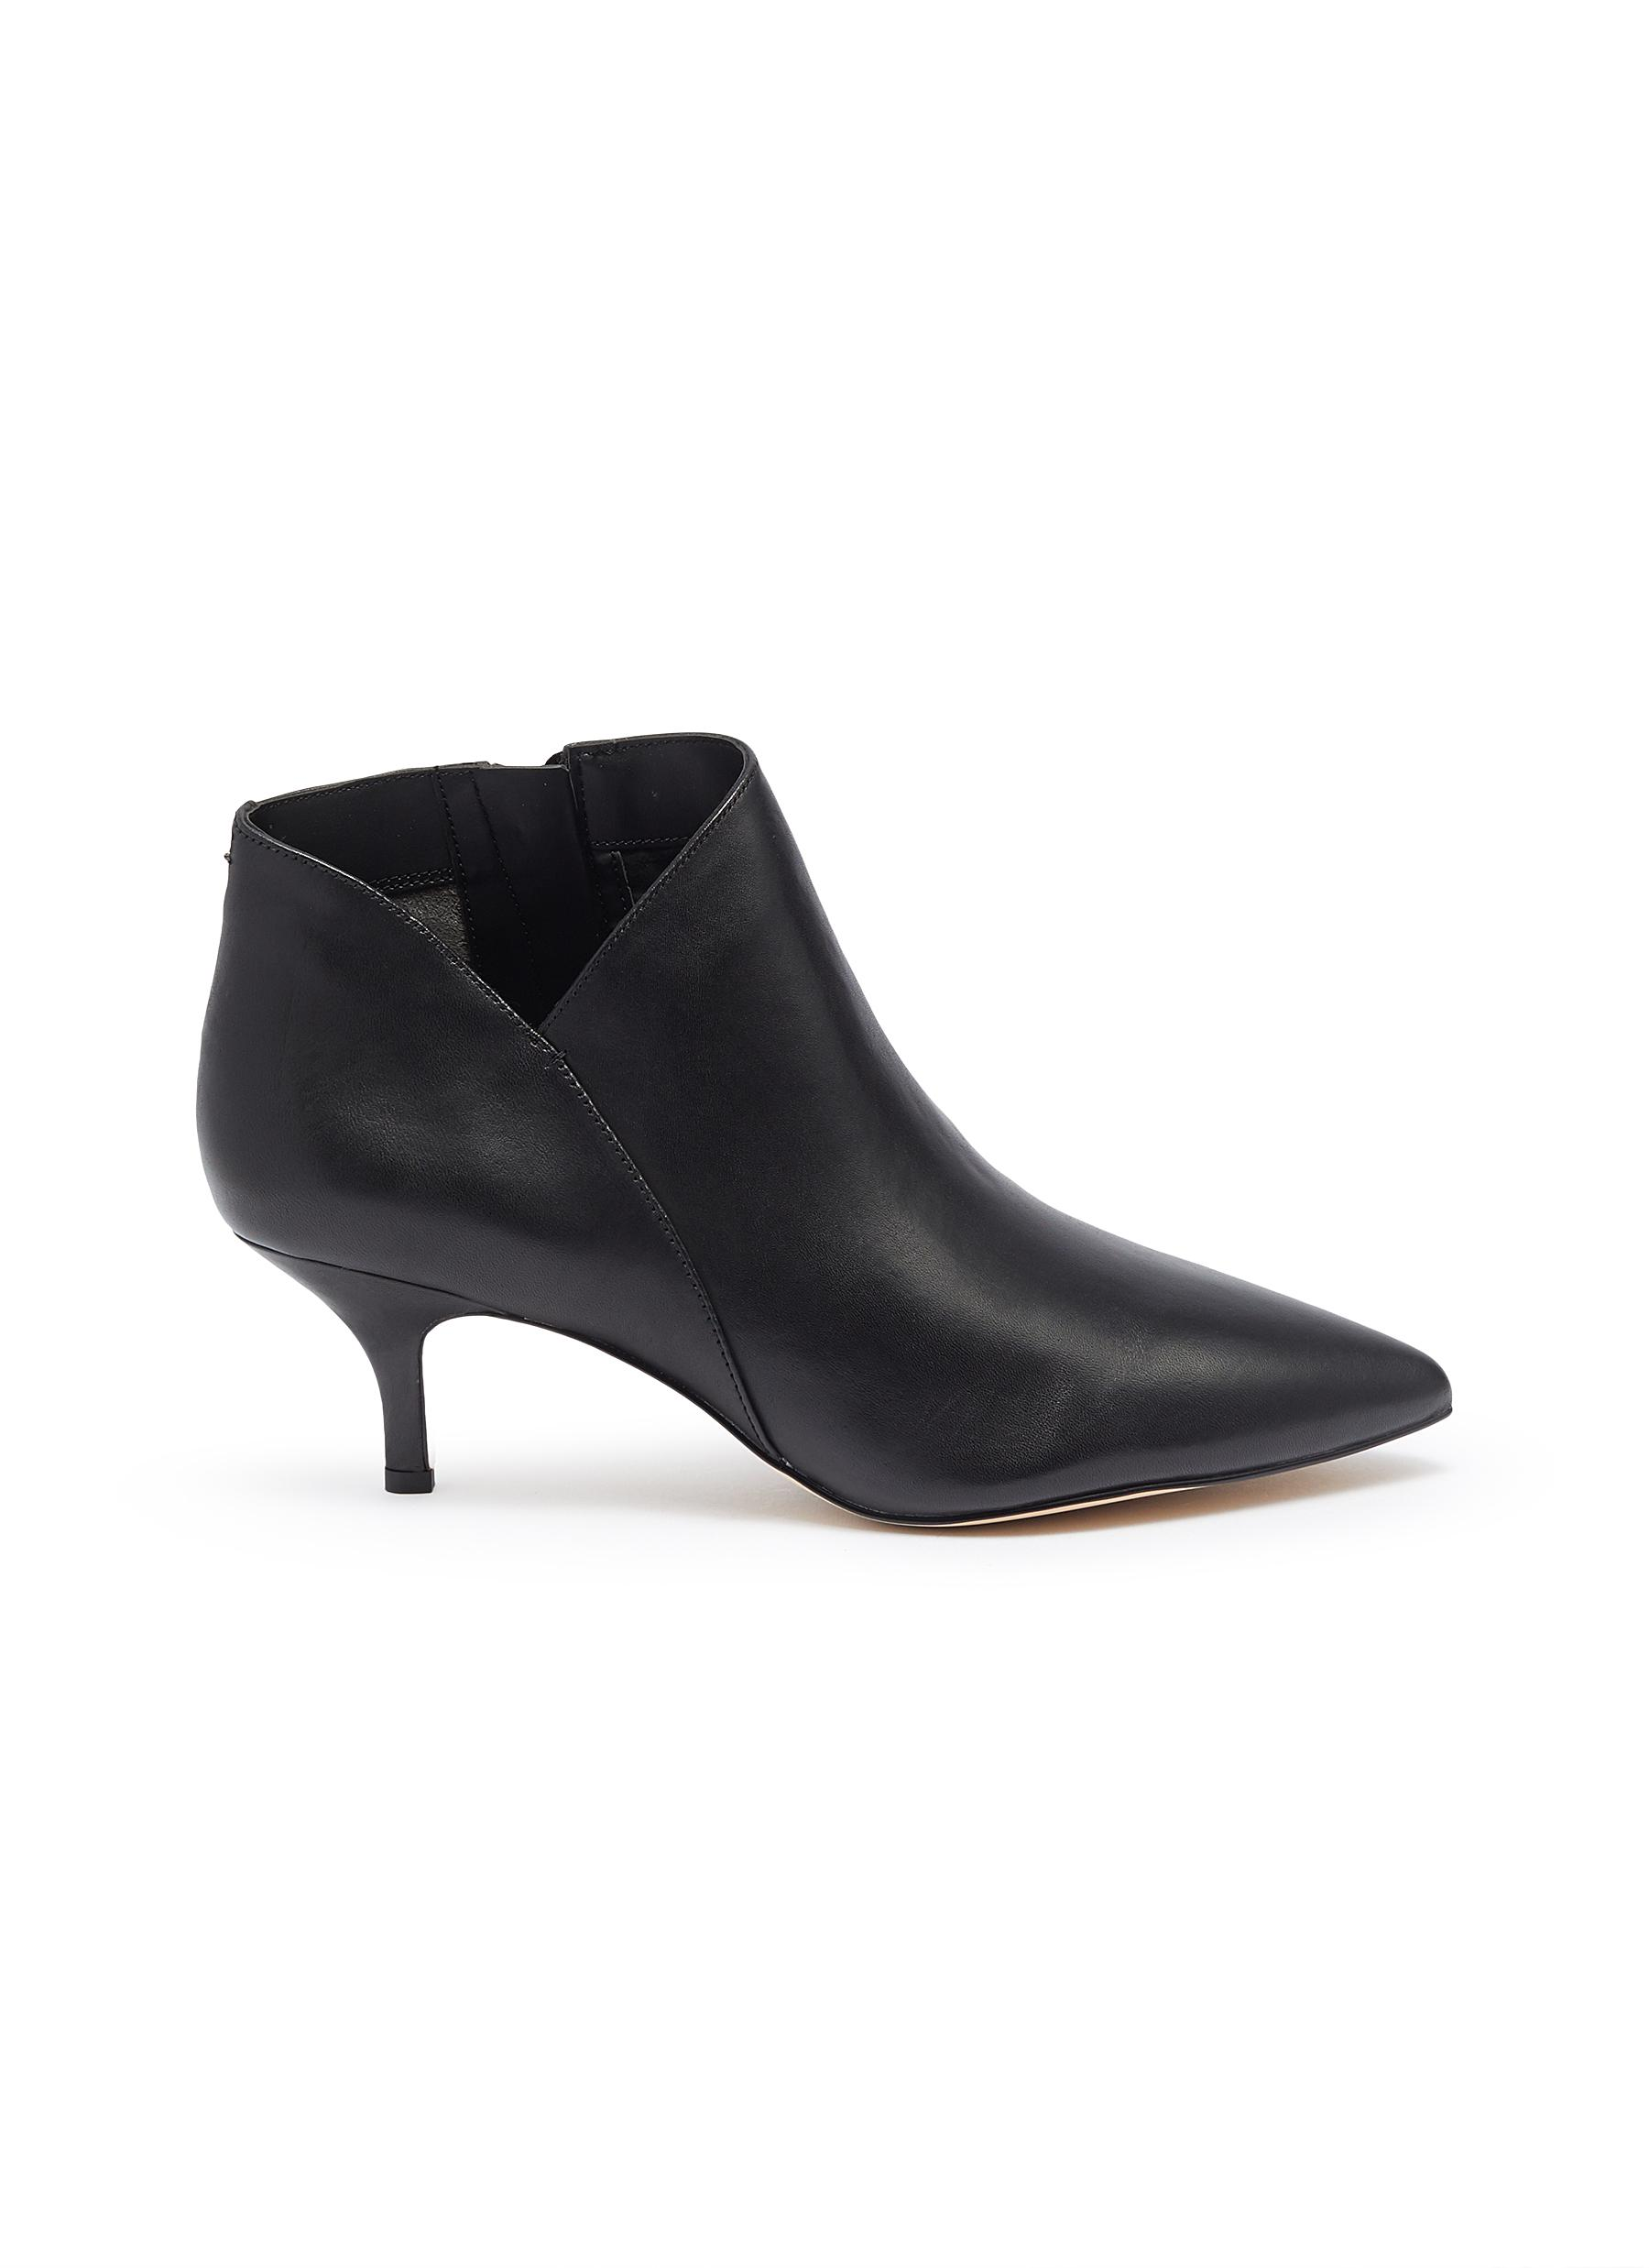 Kadison leather ankle boots by Sam Edelman